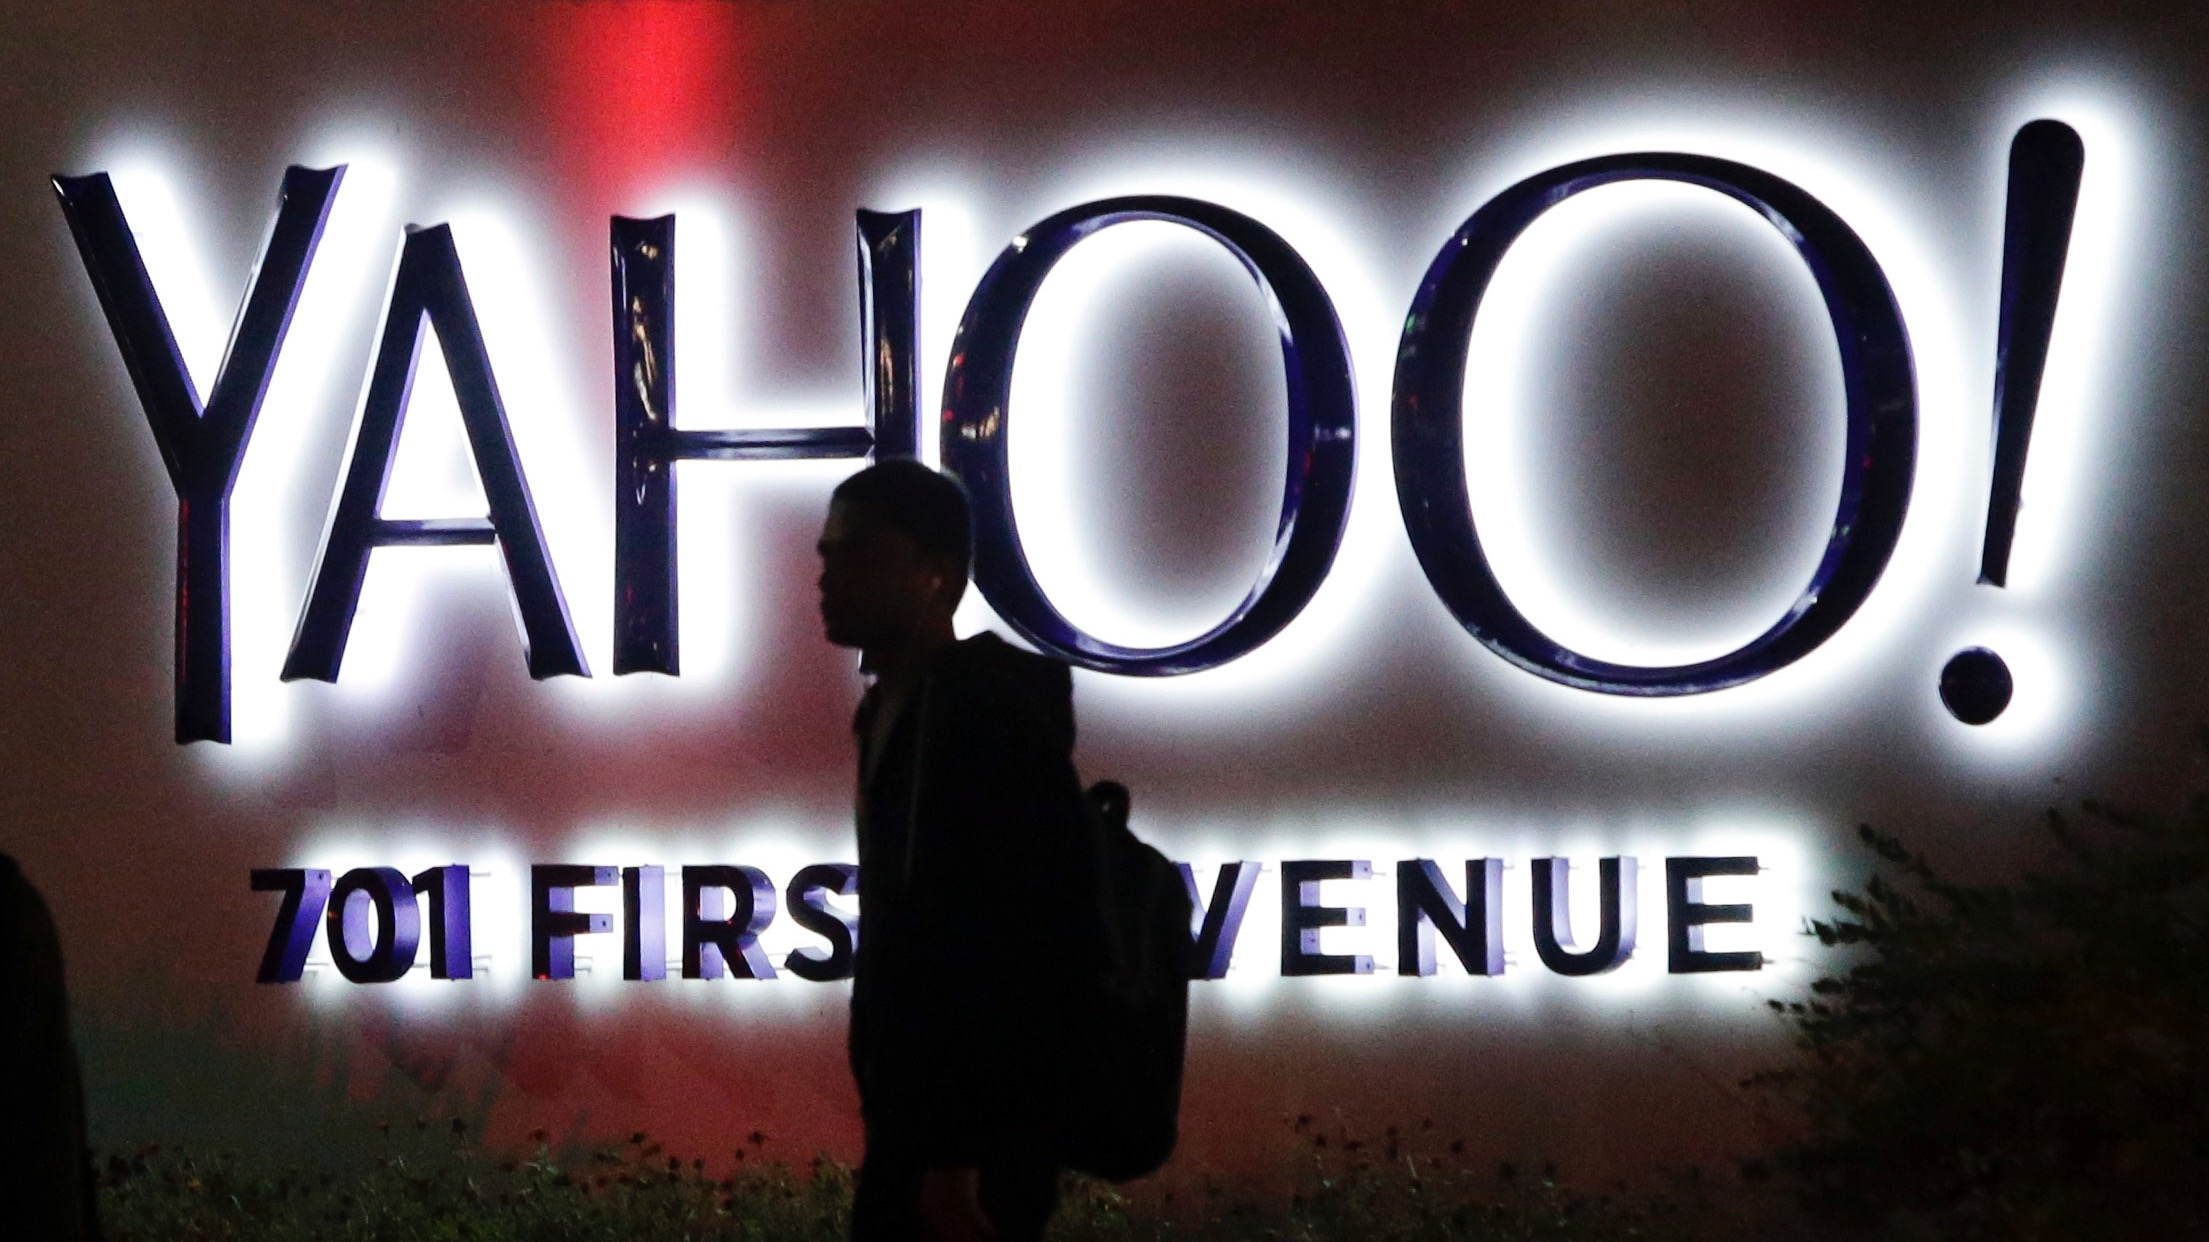 FILE - In this Nov. 5, 2014, file photo, a person walks in front of a Yahoo sign at the company's headquarters in Sunnyvale, Calif. Yahoo reported Tuesday, April 19, 2016, that after subtracting ad commissions, Yahoo's revenue fell 18 percent from the same time a year earlier, to $859 million. It's the largest decline in Yahoo's quarterly net revenue since the company hired Marissa Mayer as its CEO nearly four years ago. (AP Photo/Marcio Jose Sanchez, File)